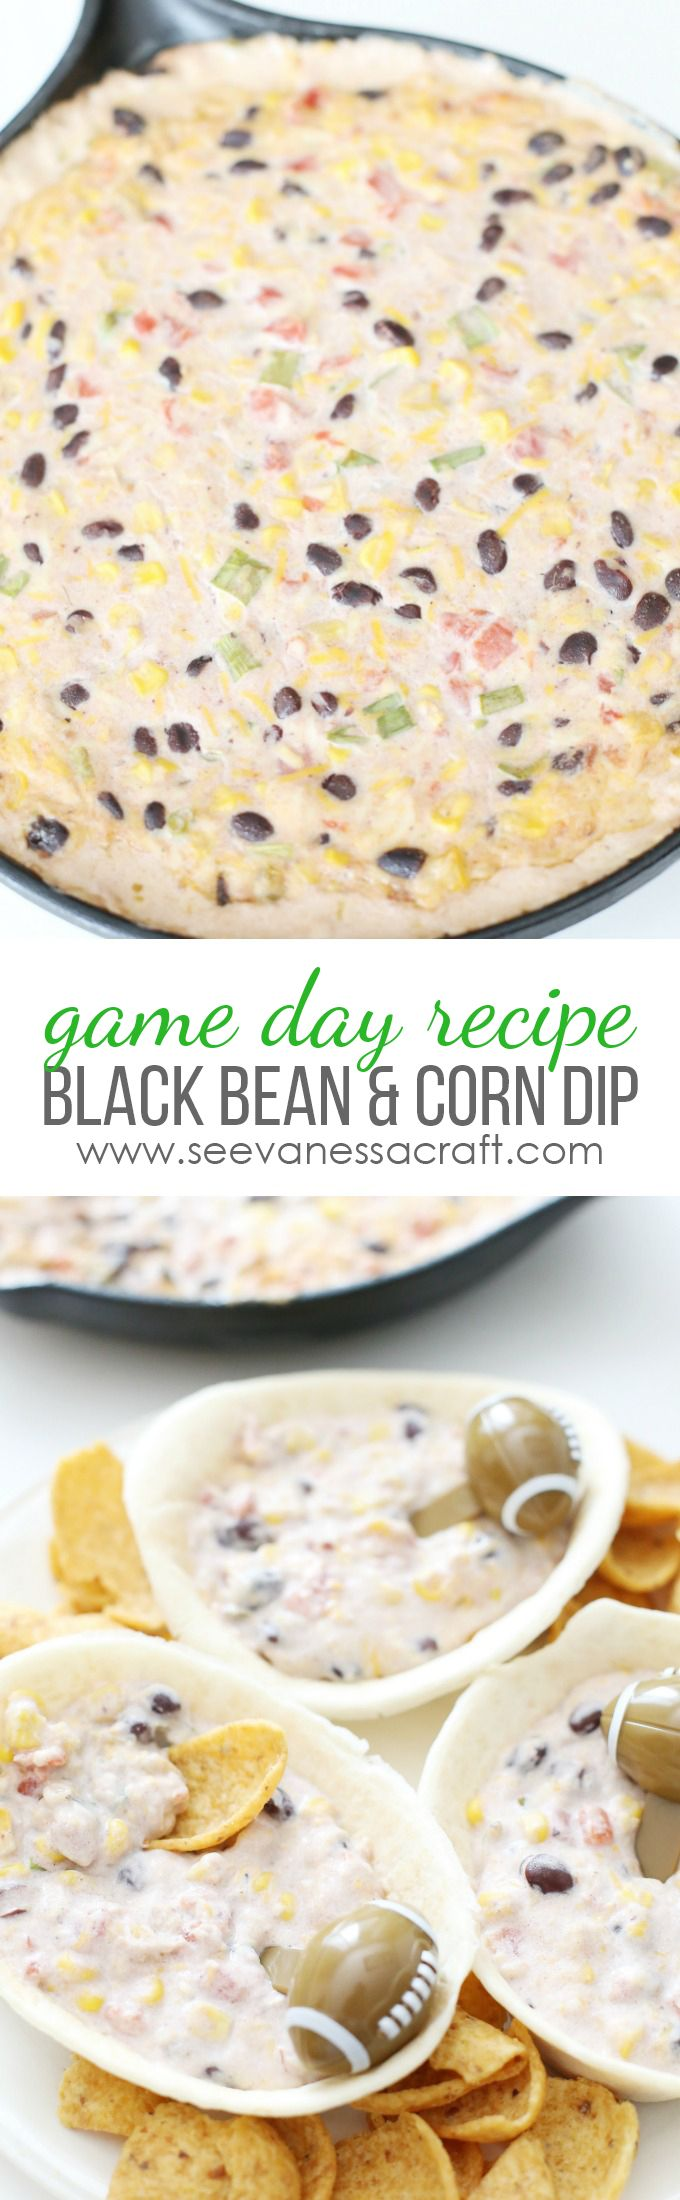 Cheesy Black Bean and Corn Dip Recipe - perfect for a football party or tailgating! #OldElPasoTailgate #ad